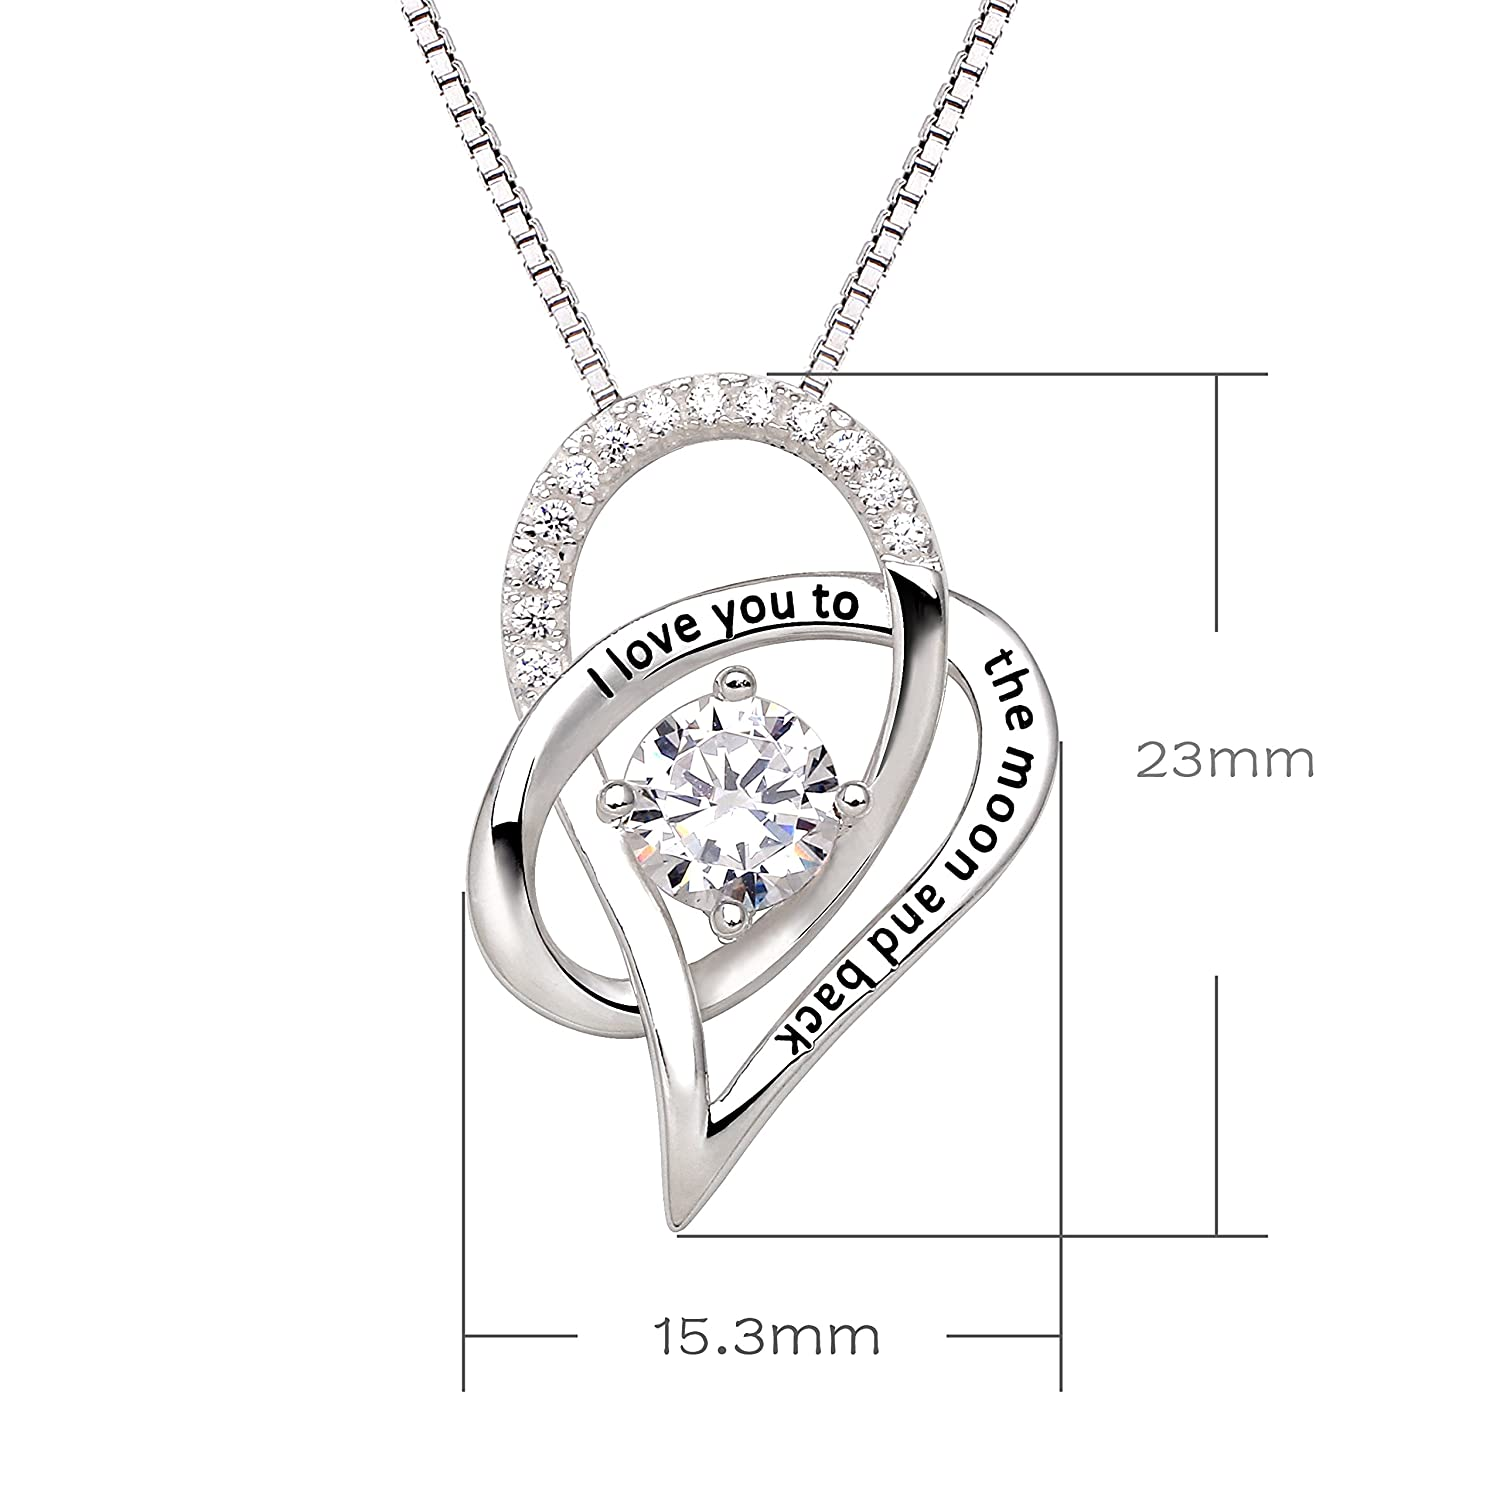 Alov jewelry sterling silver i love you to the moon and back alov jewelry sterling silver i love you to the moon and back love heart cubic zirconia pendant necklace amazon jewellery mozeypictures Choice Image